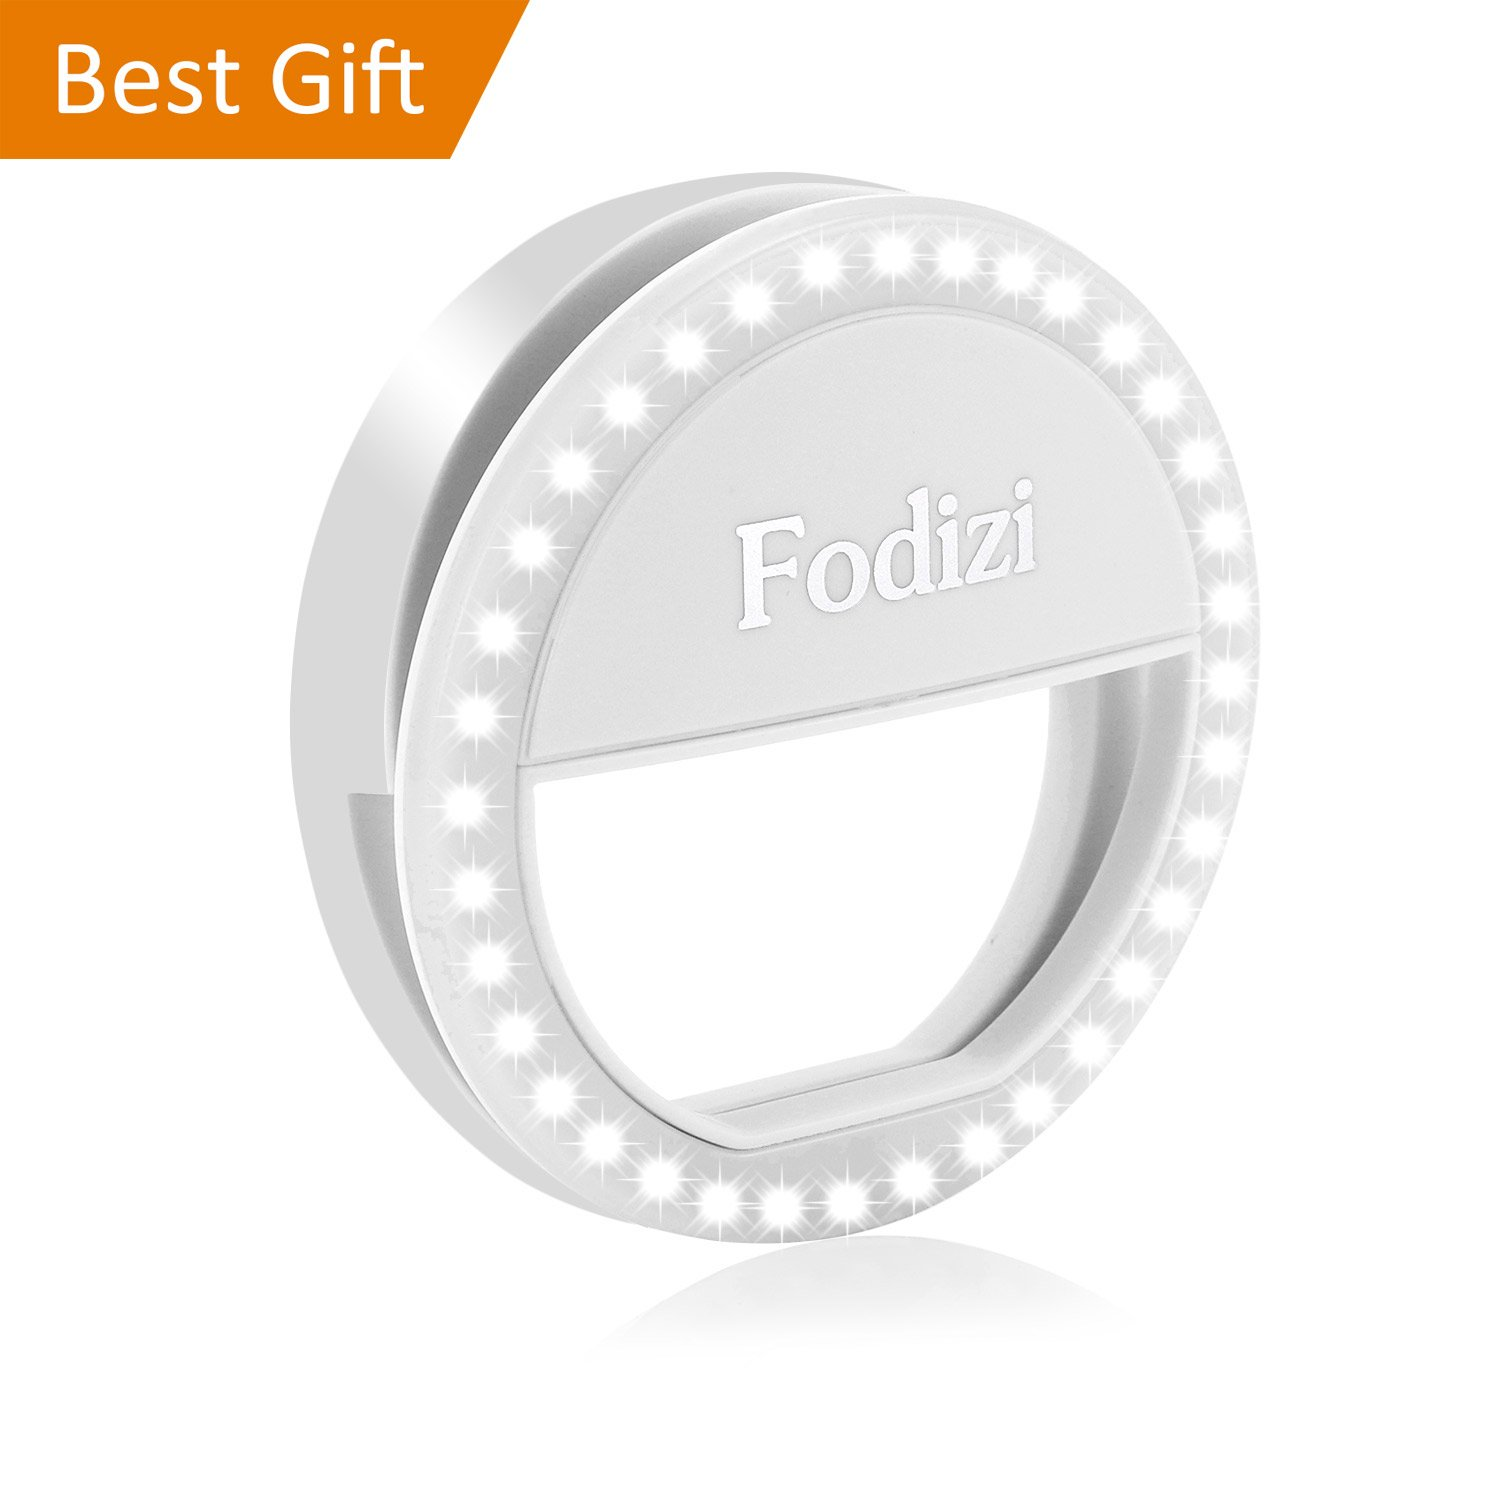 Fodizi Selfie Ring Light Clip On Light for Phone Camera 【2018s】36 Led Ring Light for iPhone iPad Photography - White